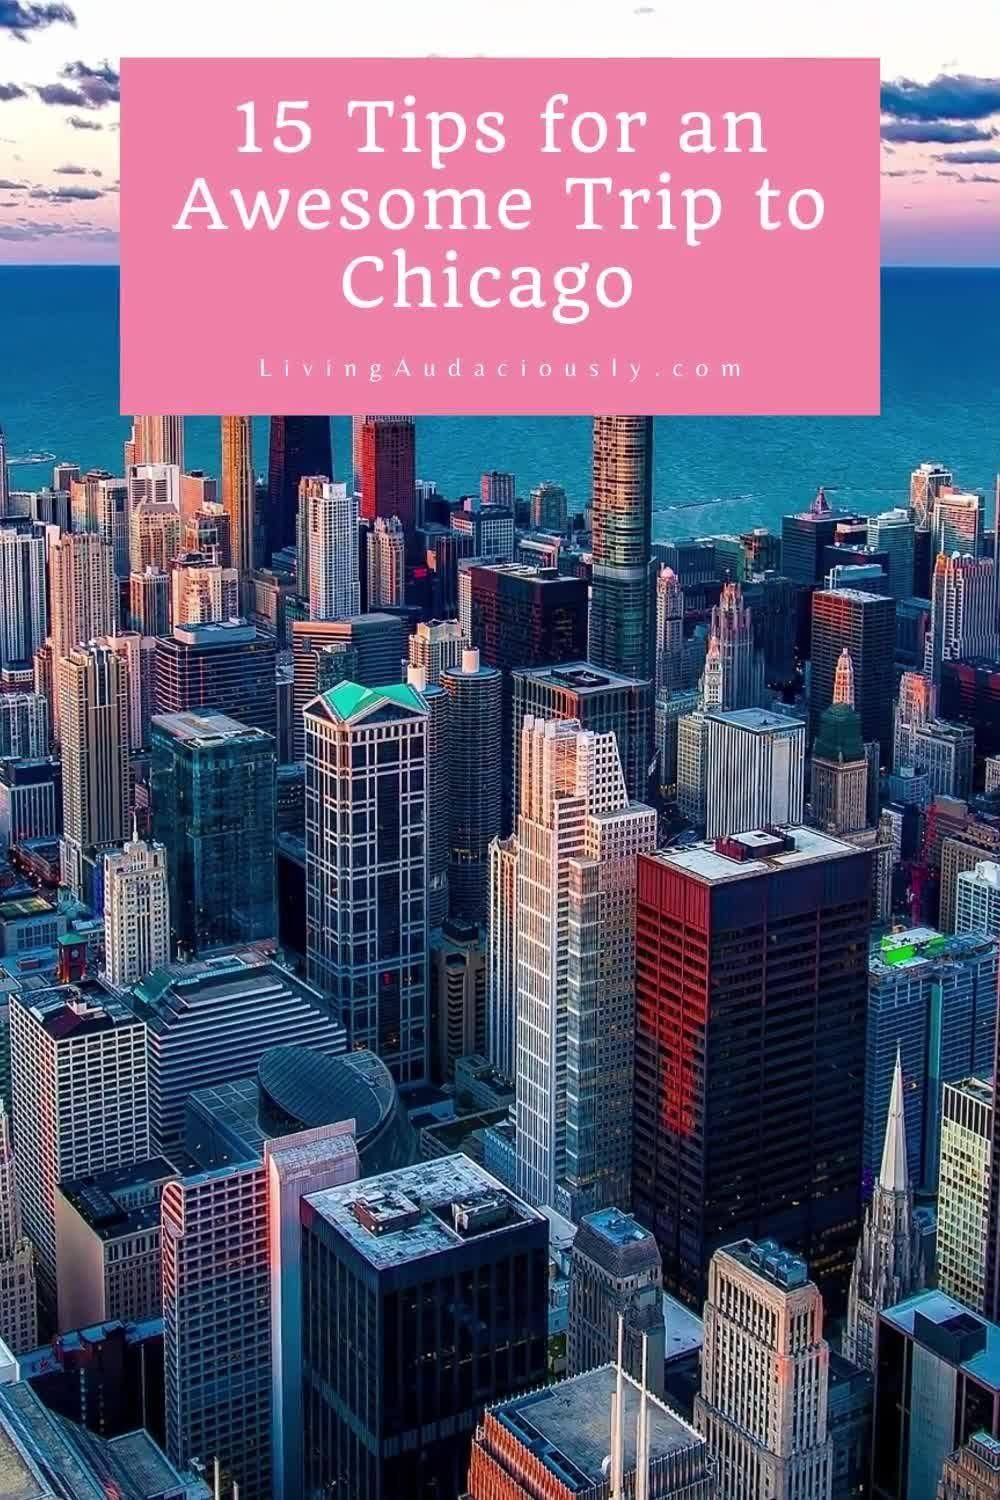 15 Places To Visit In Chicago Video In 2021 Chicago Travel Visit Chicago Chicago